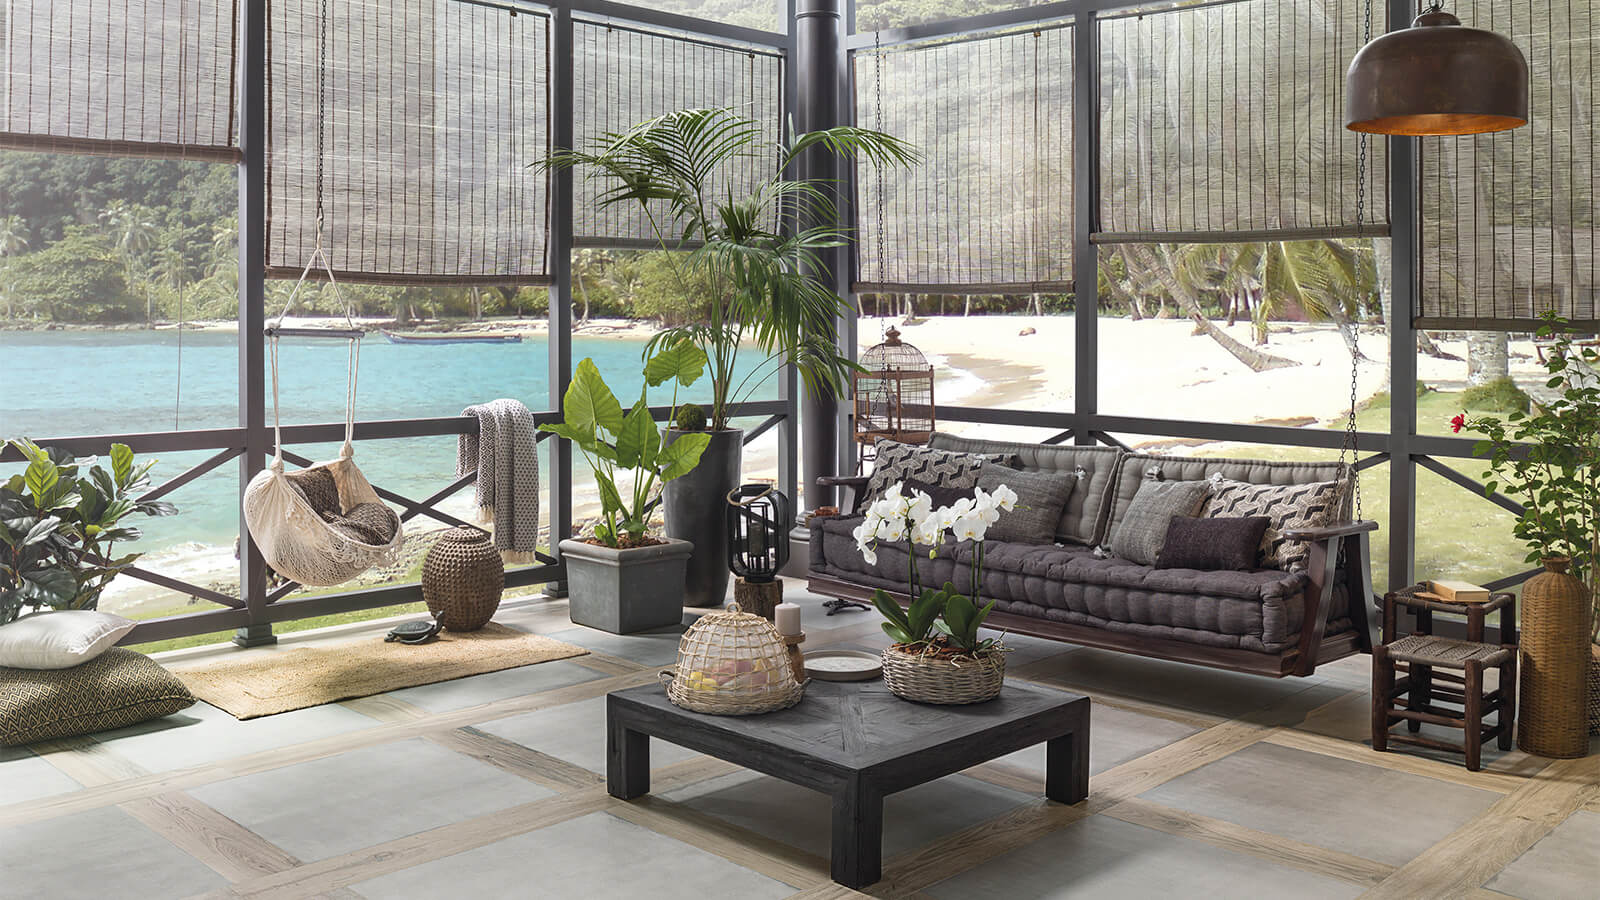 Interiors set for summer; keeping cool with design